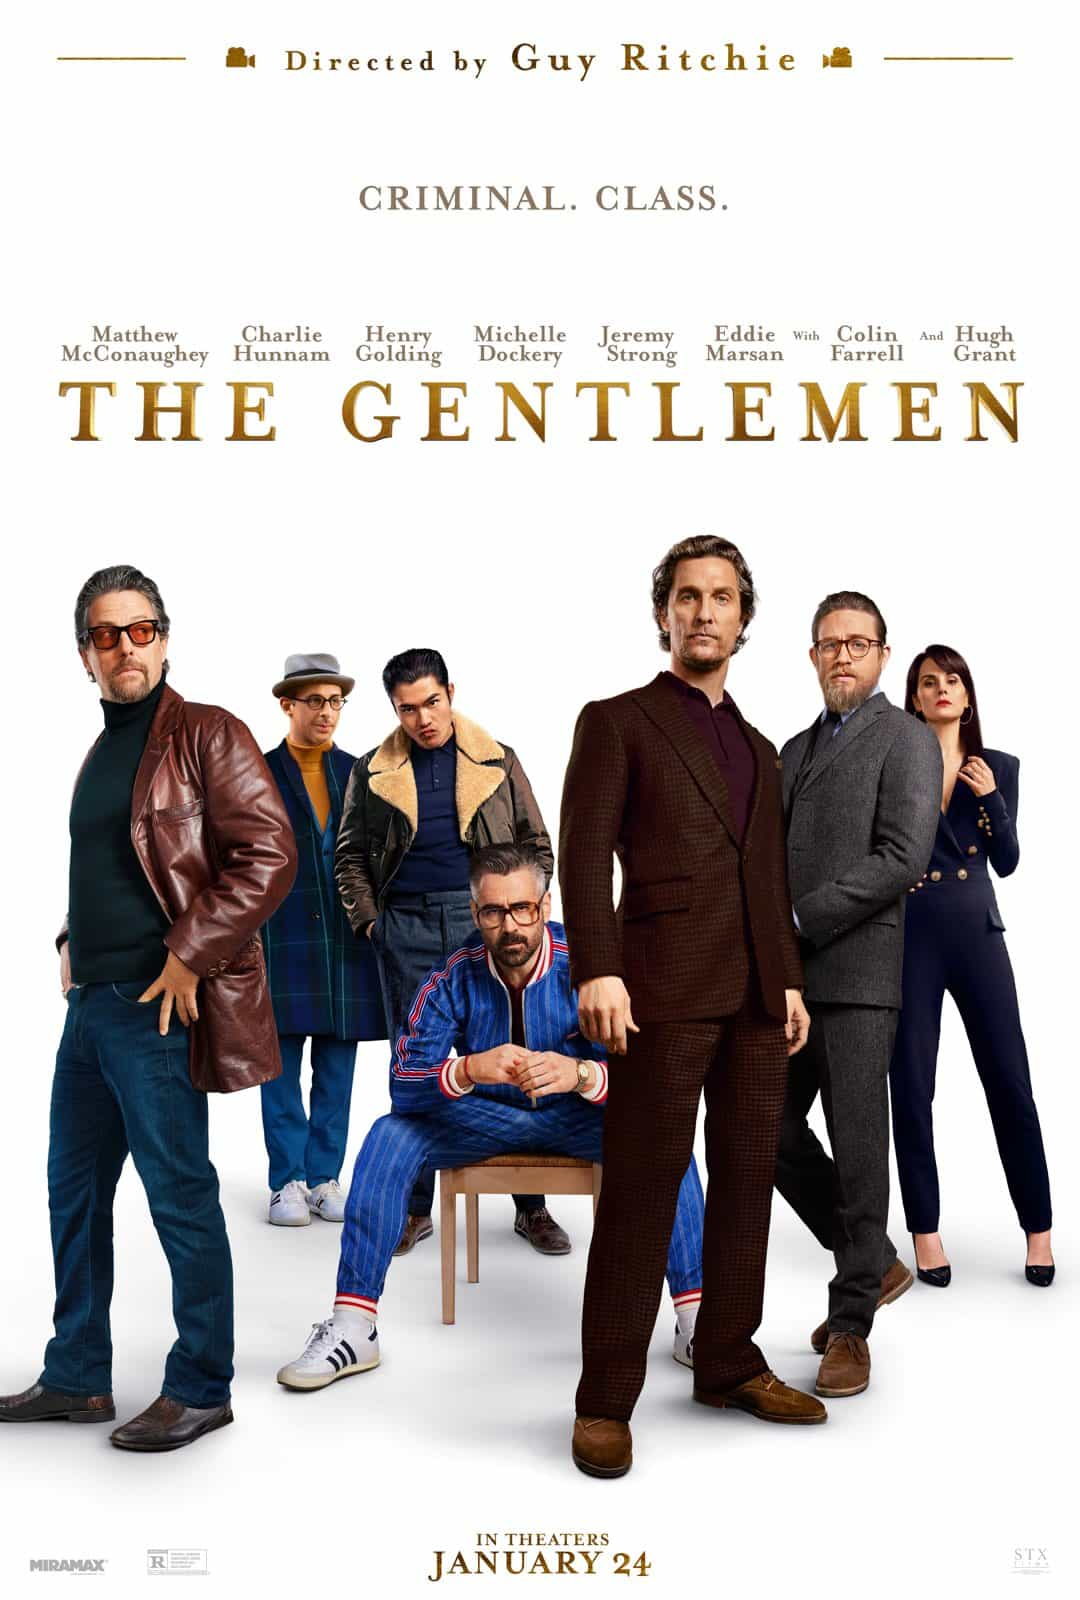 Guy Ritchie goes back to his roots in the first trailer for The Gentlemen